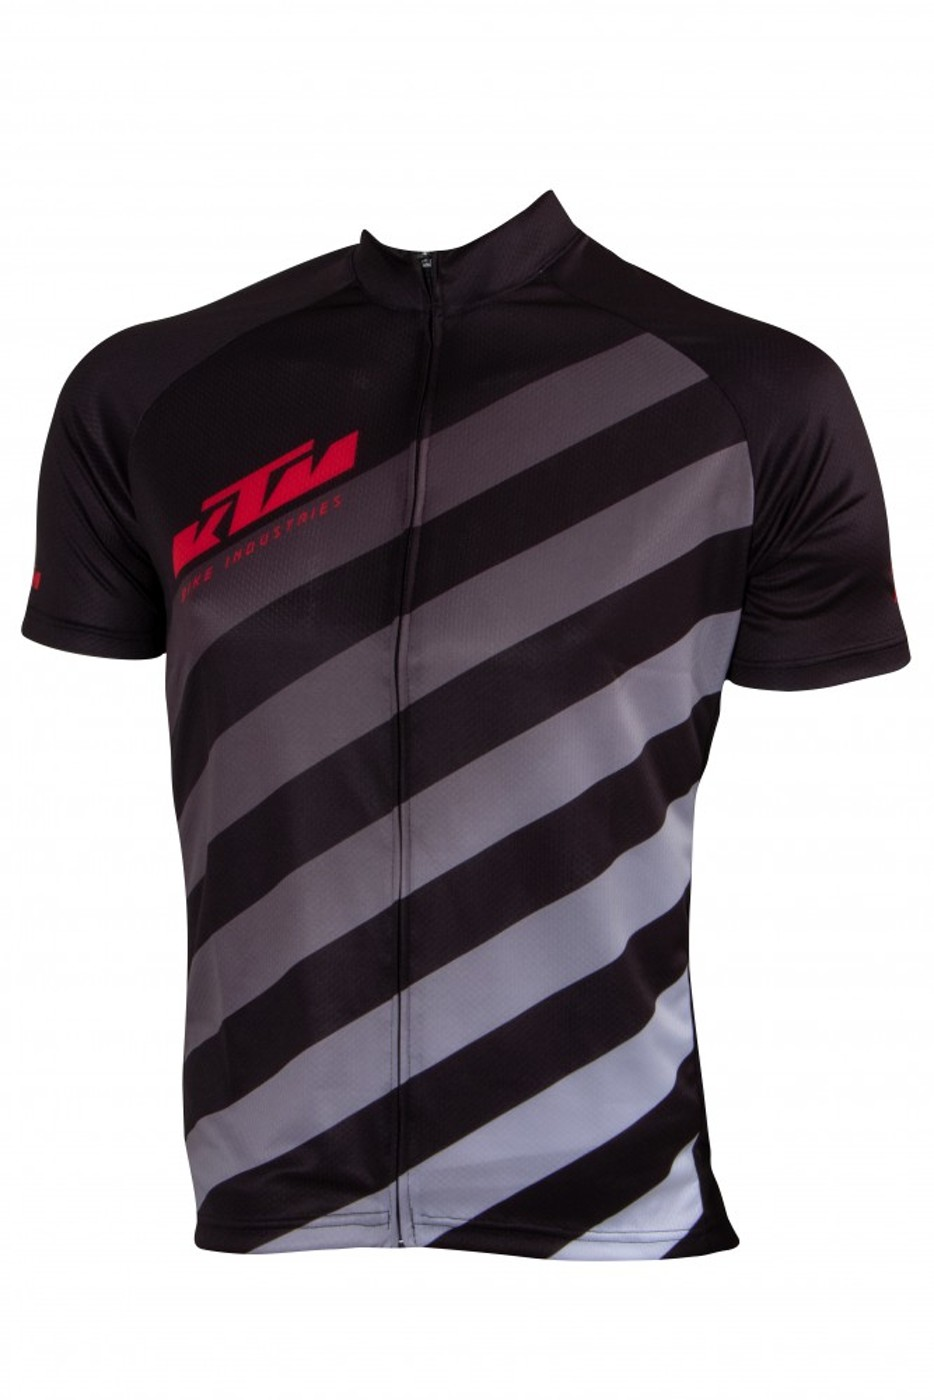 KTM Factory Character LTD Shirt - Herren